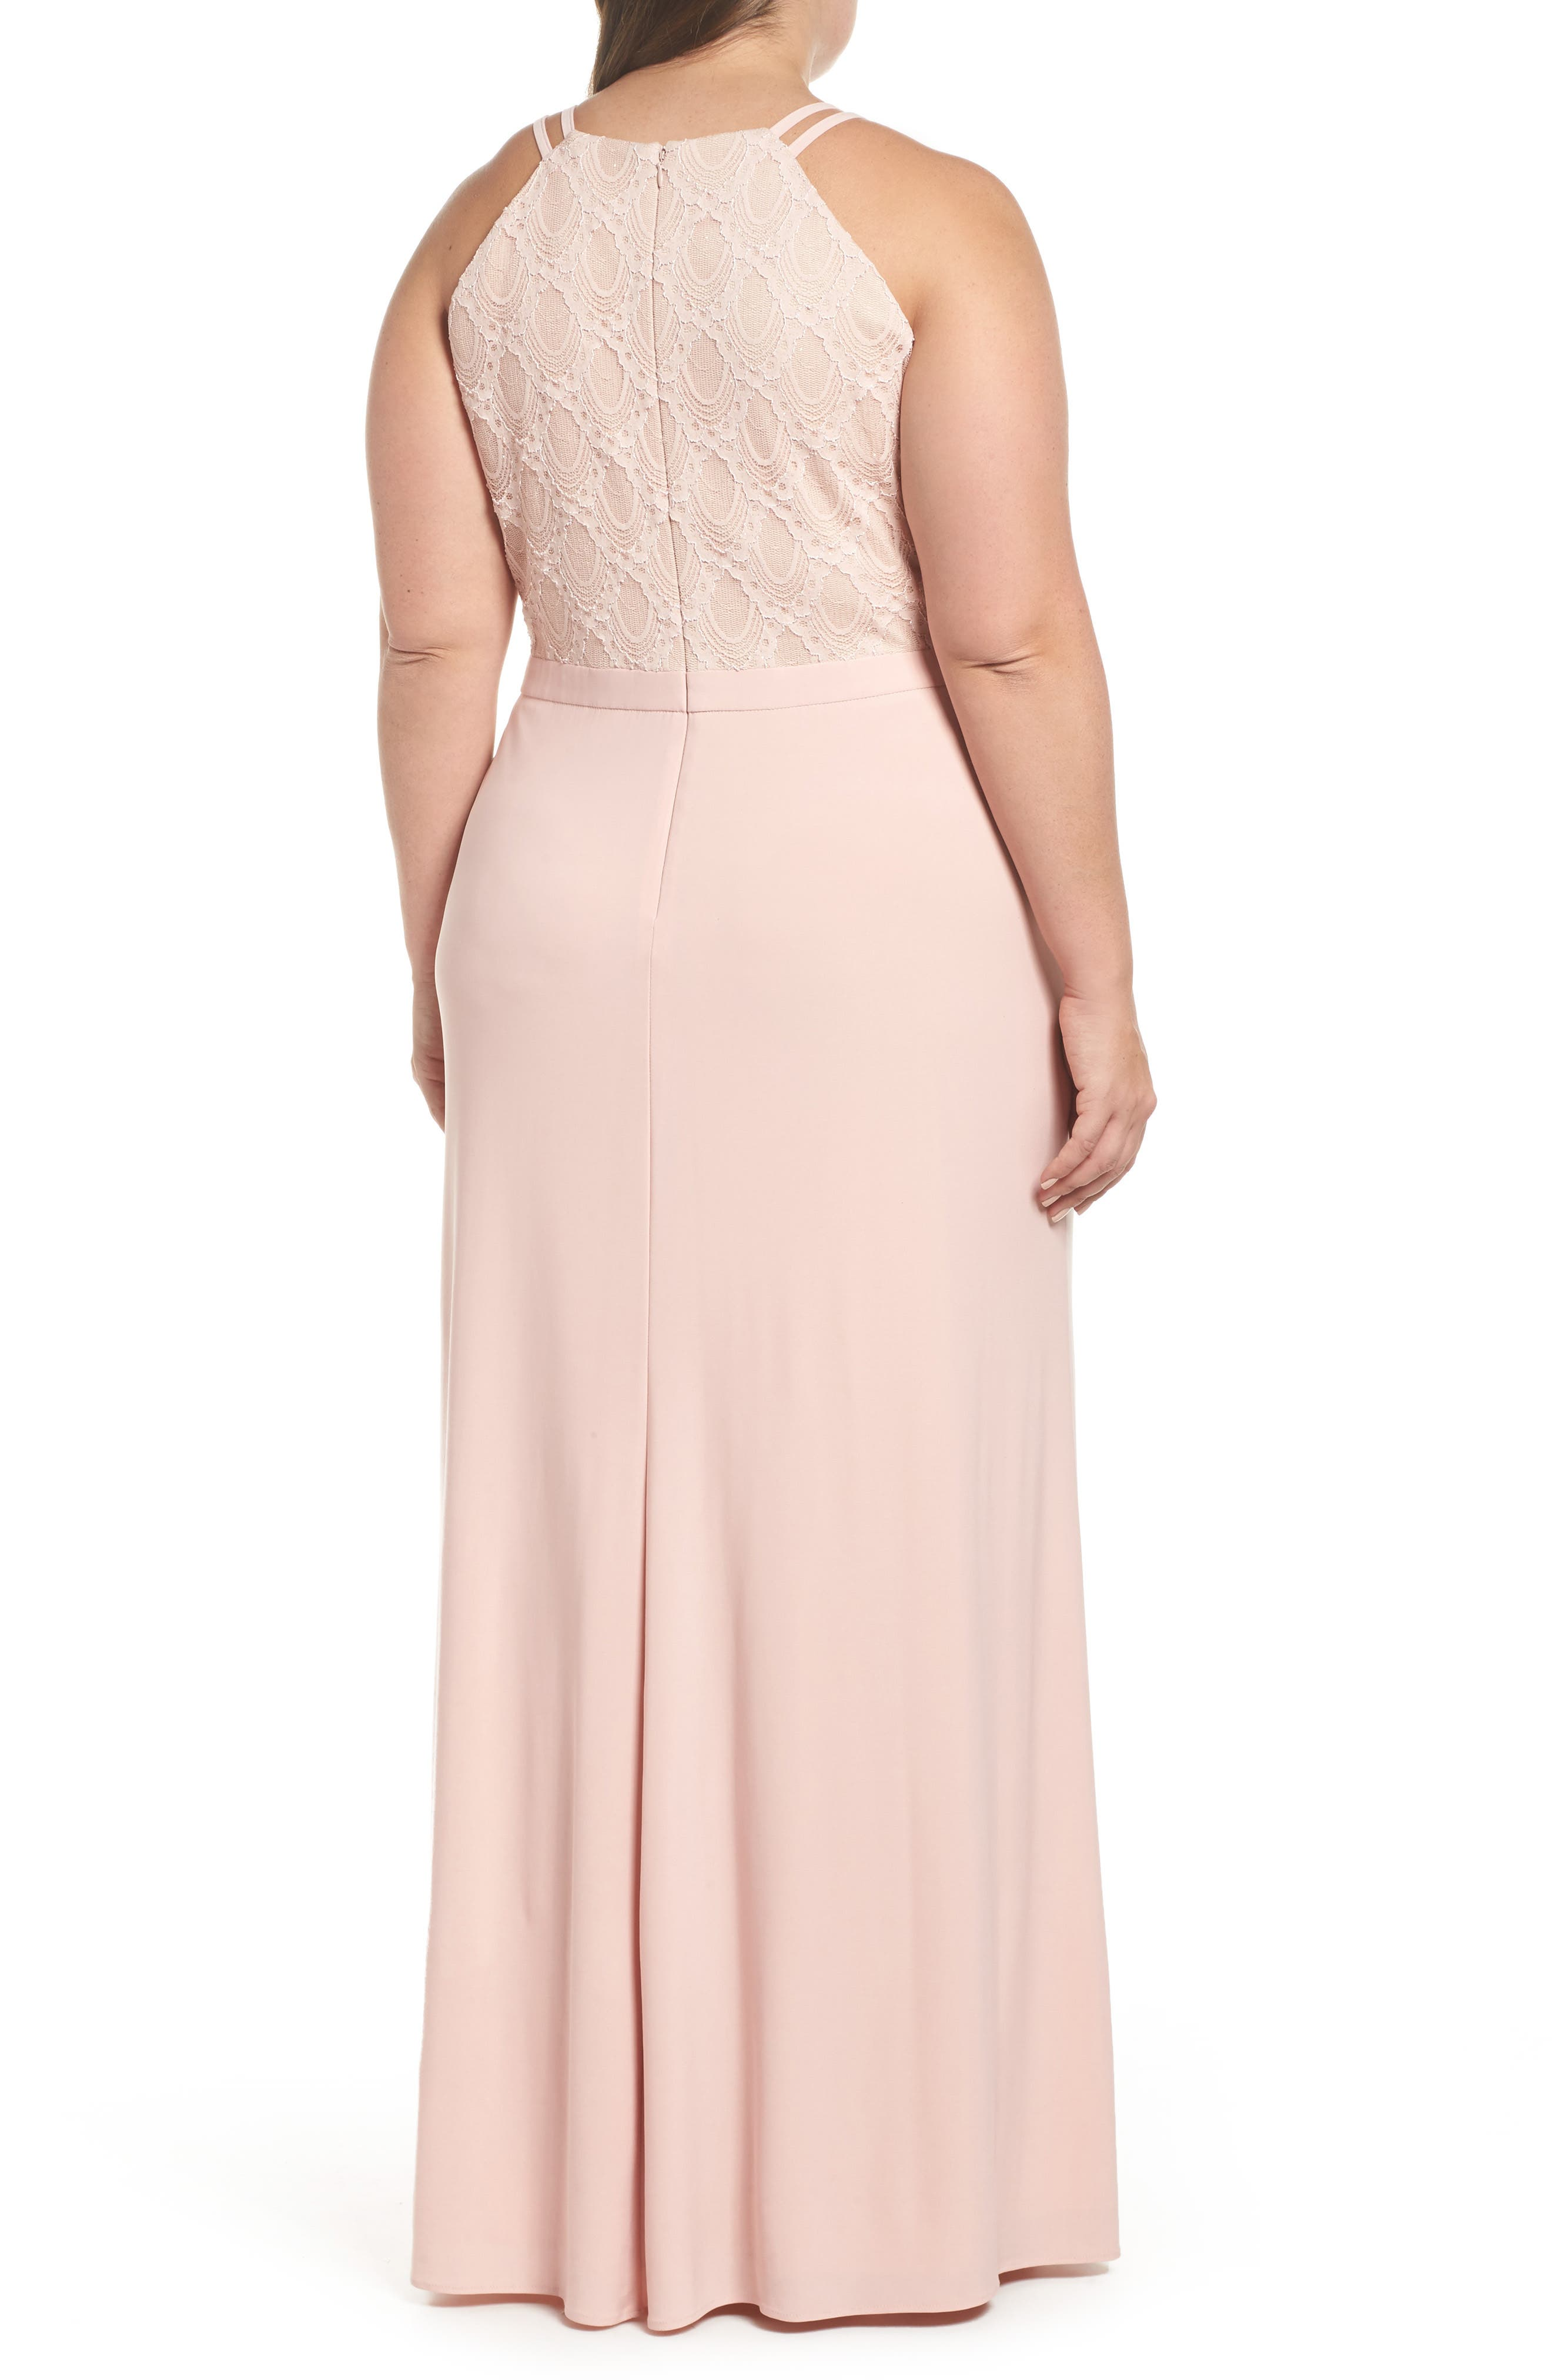 Lace Bodice Gown,                             Alternate thumbnail 2, color,                             Blush/ Nude